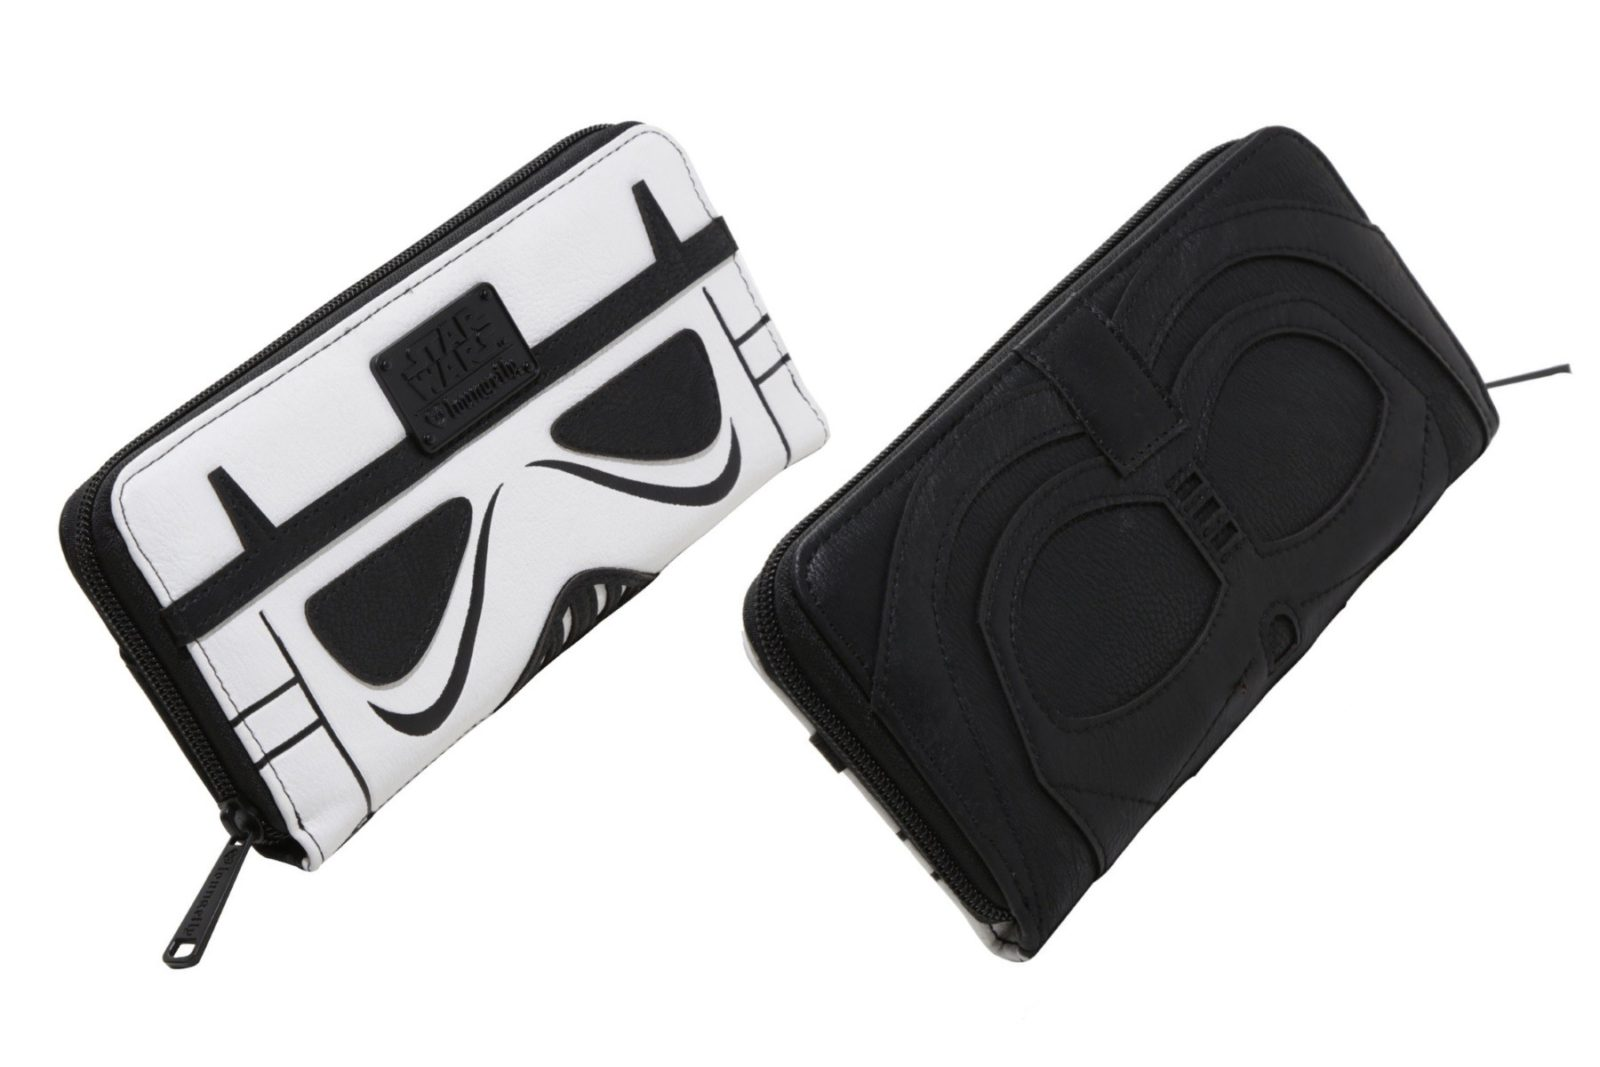 New Loungefly x Star Wars 2-sided wallet